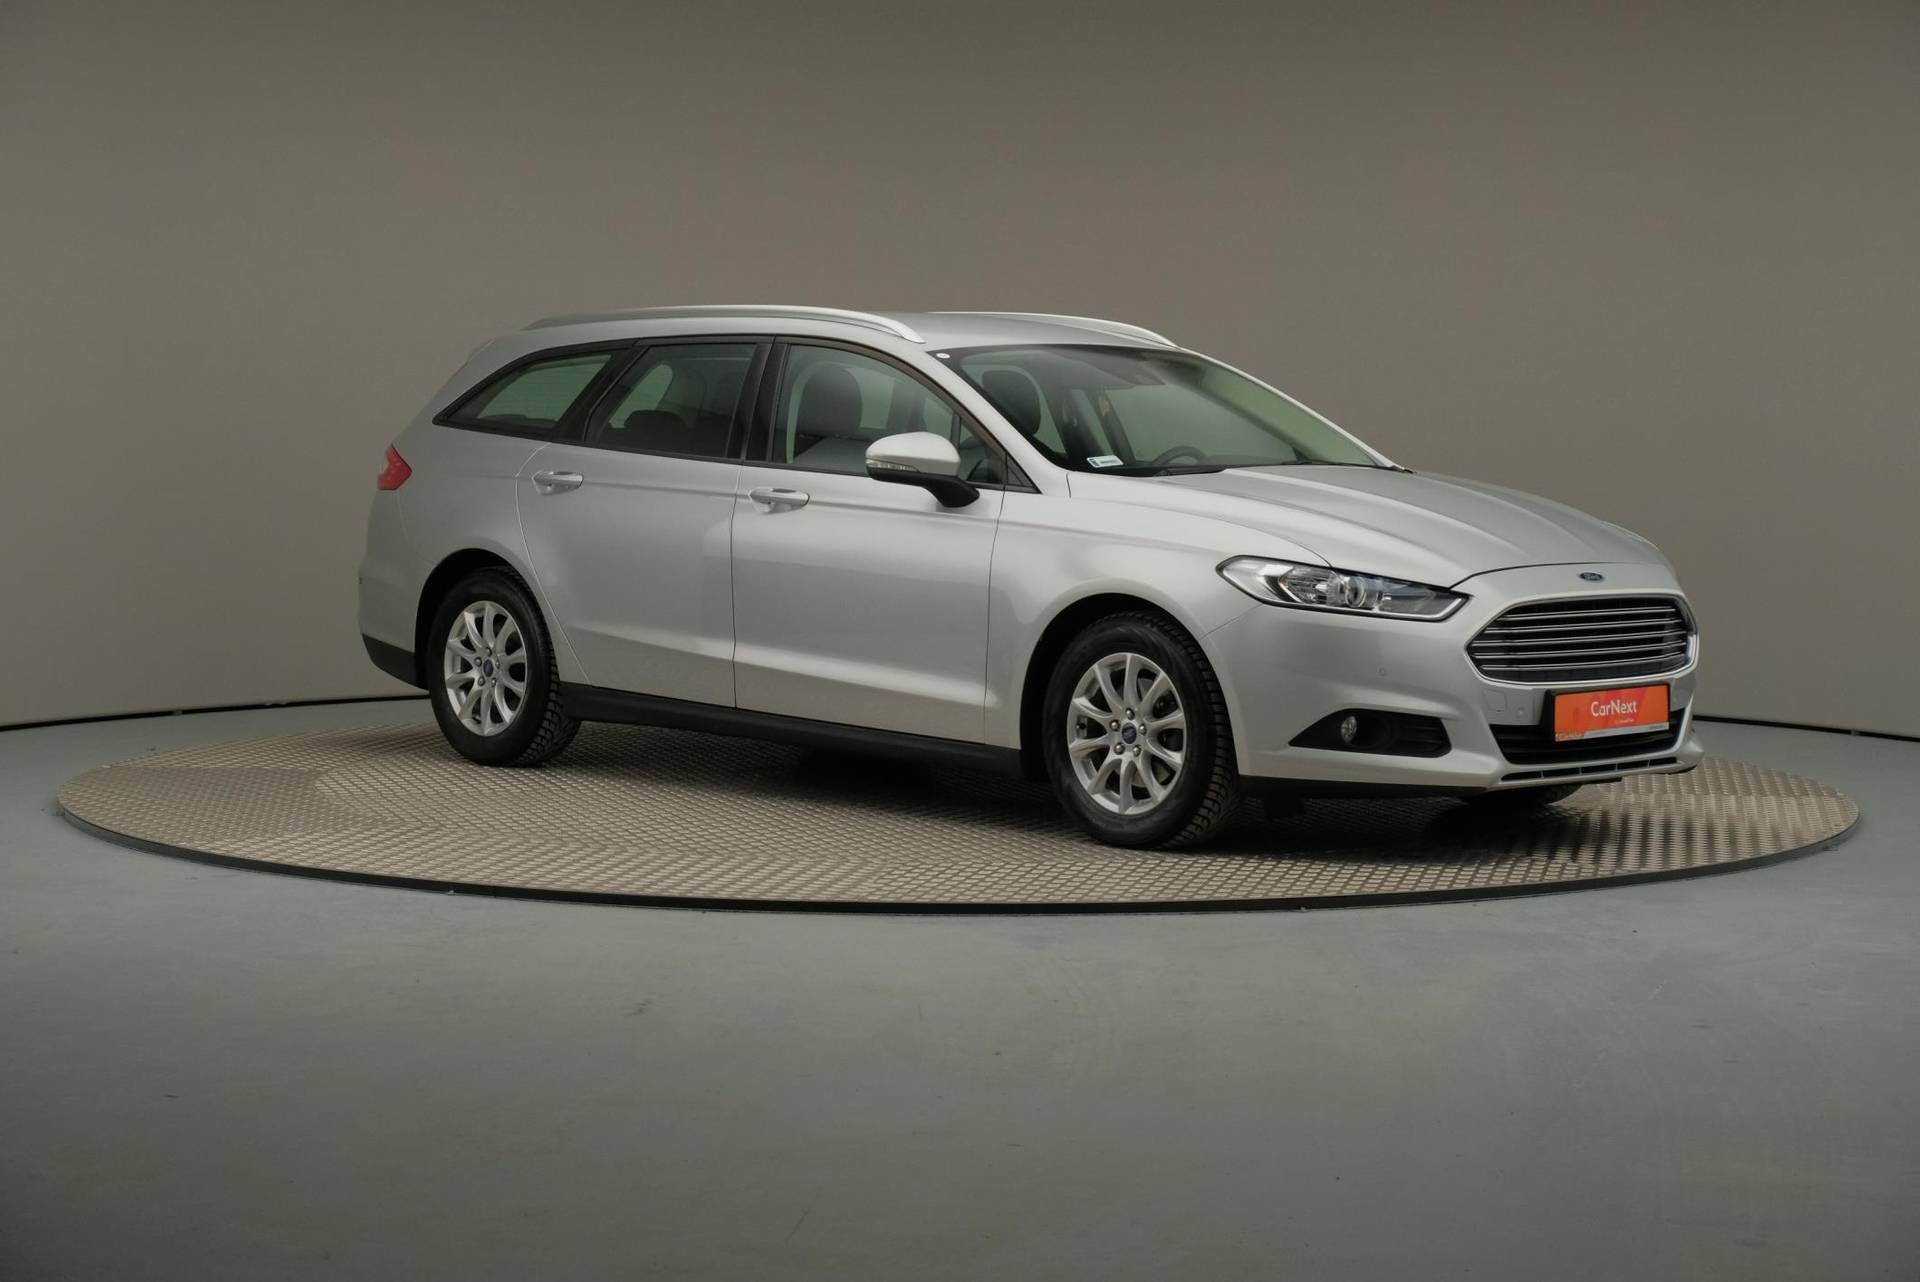 Ford Mondeo Turnier 1.5 Eco Boost Start-Stopp, Trend, 360-image27